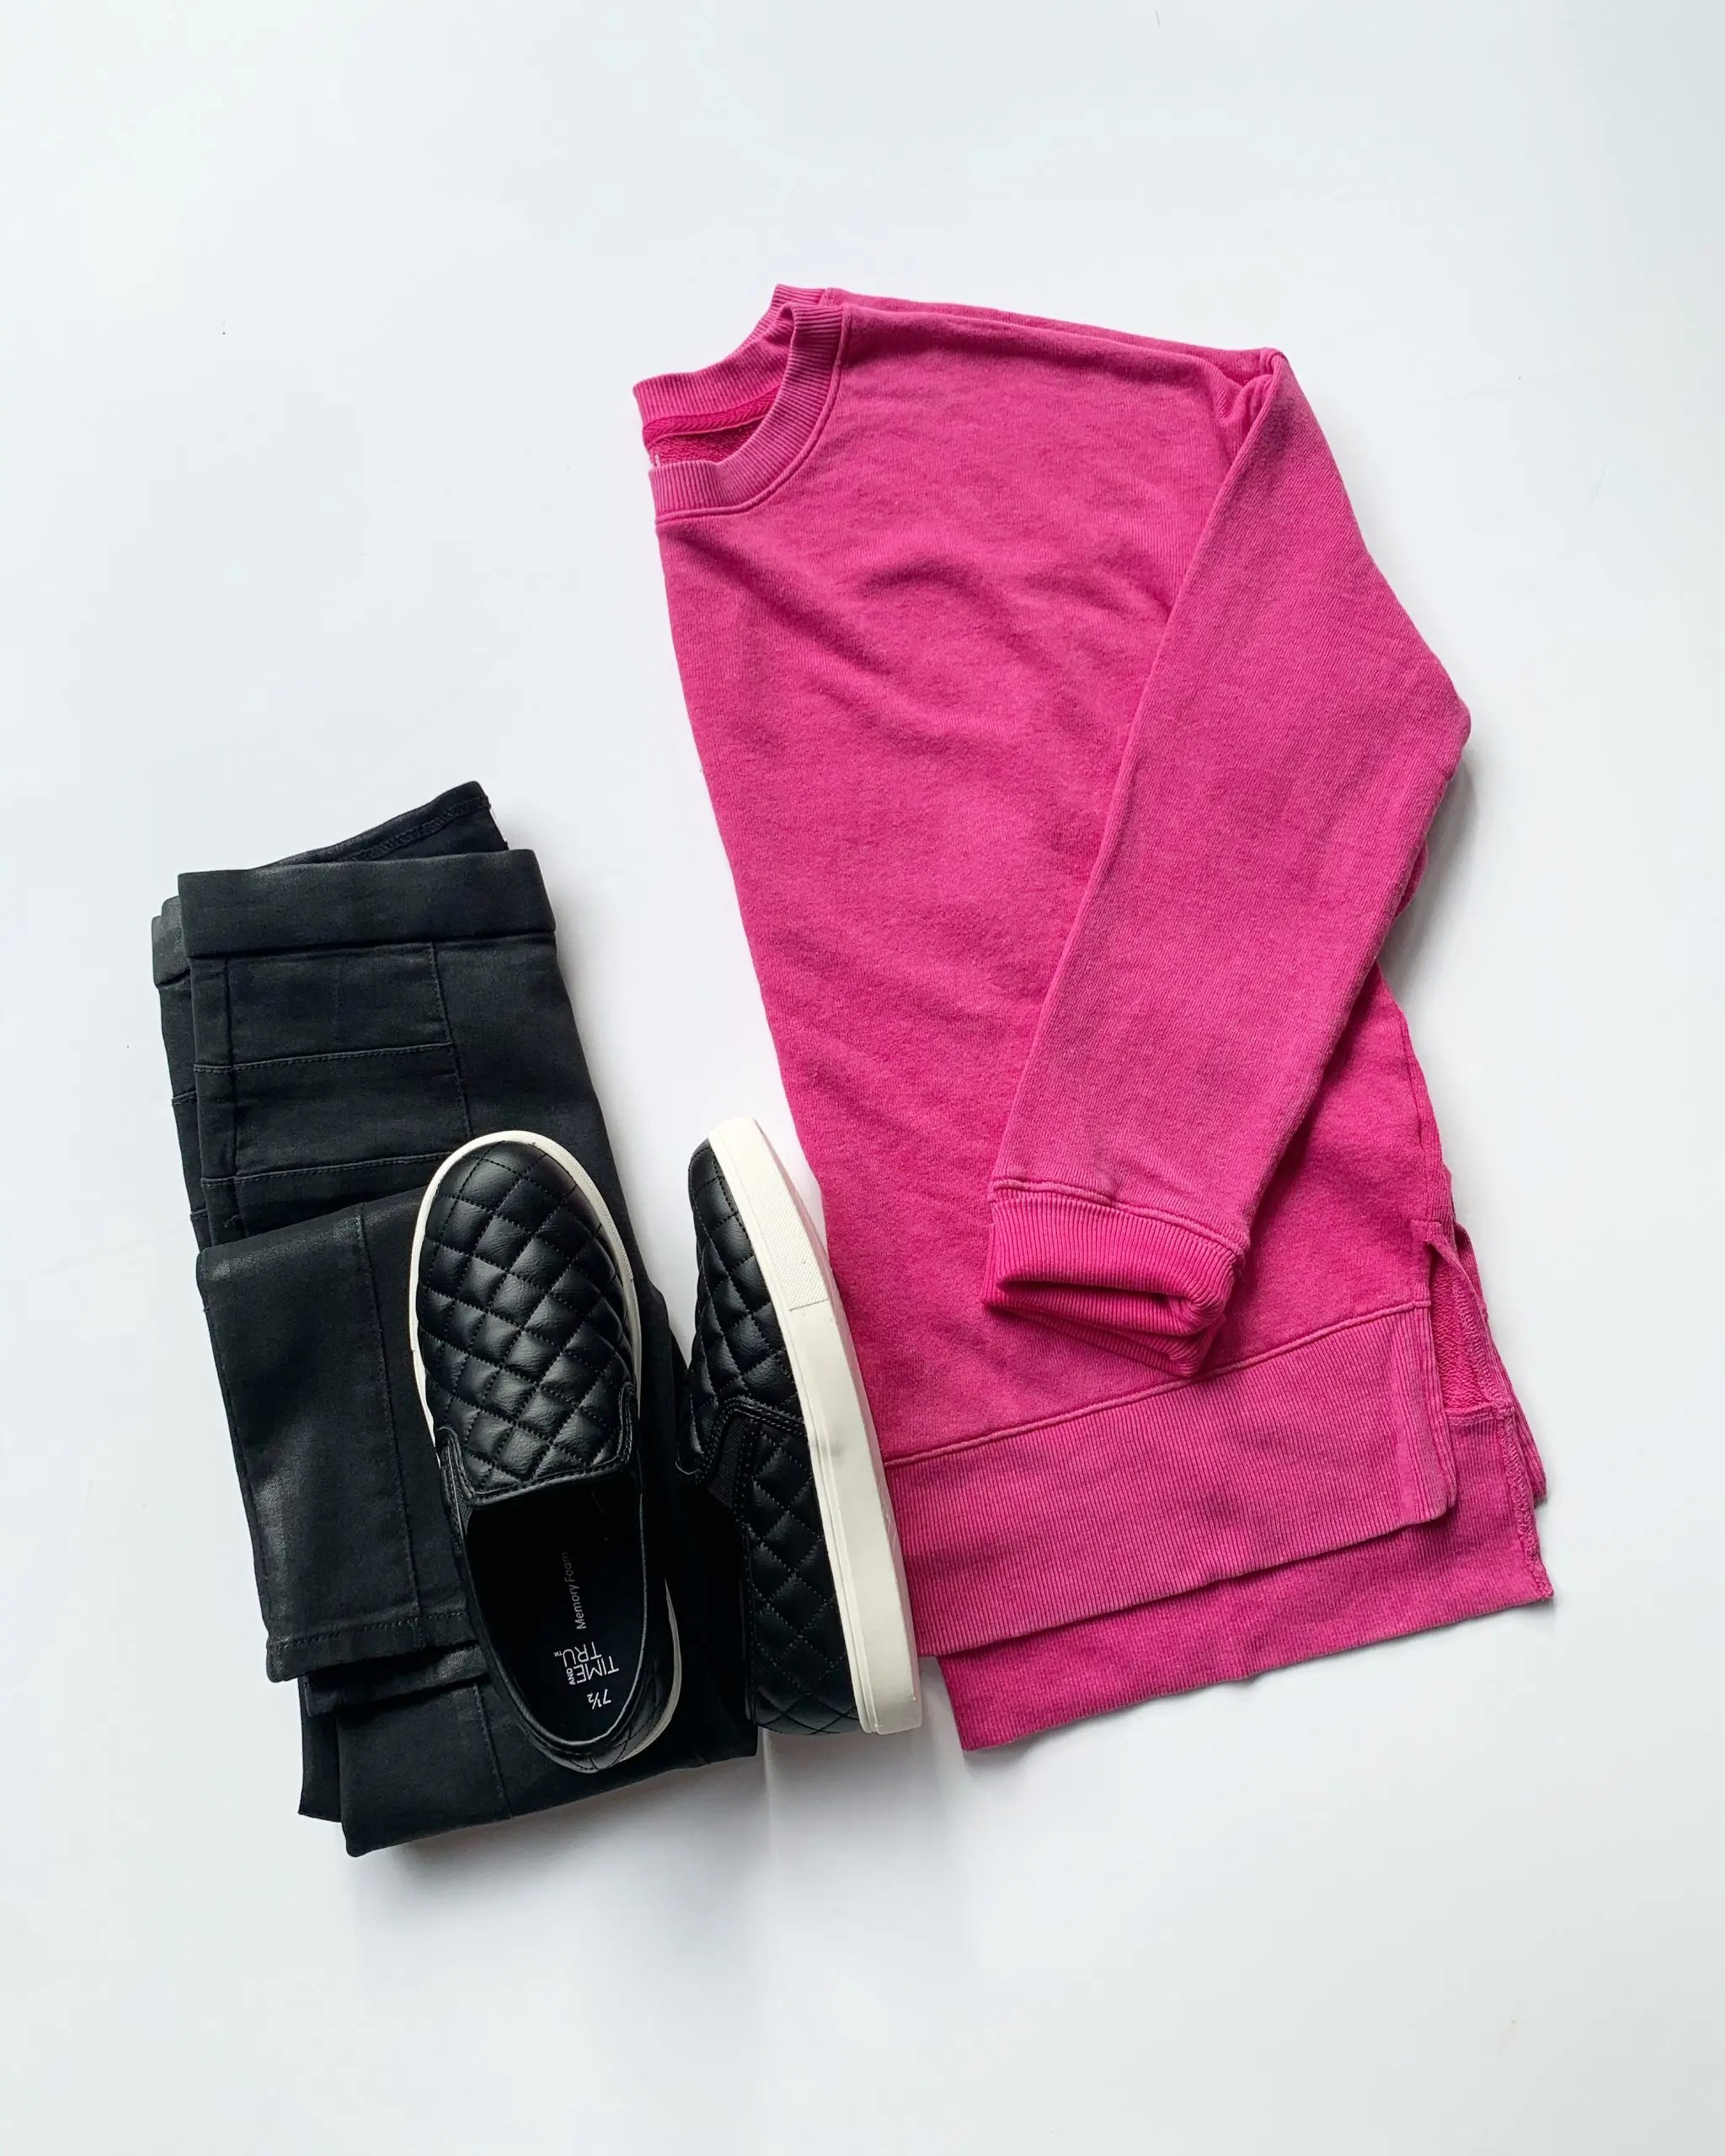 Time and Tru Crewneck Sweatshirt and Quilted Slip-Ons + Sofia Vergara Coated Jeans